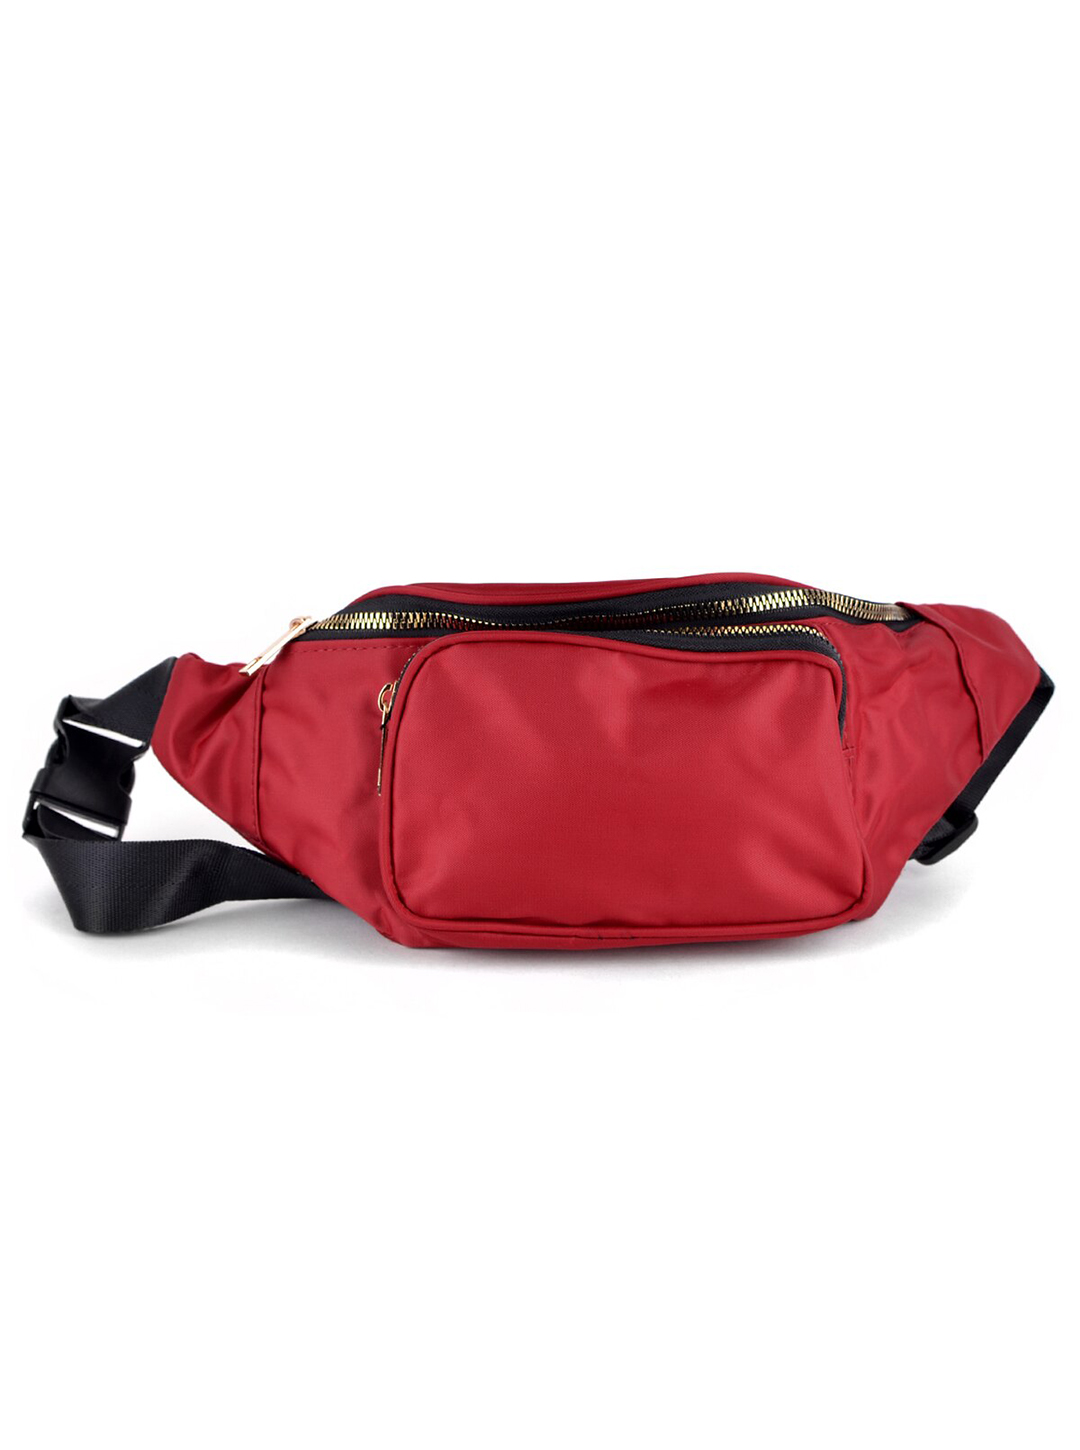 Nylon Fanny Pack - Red - Front